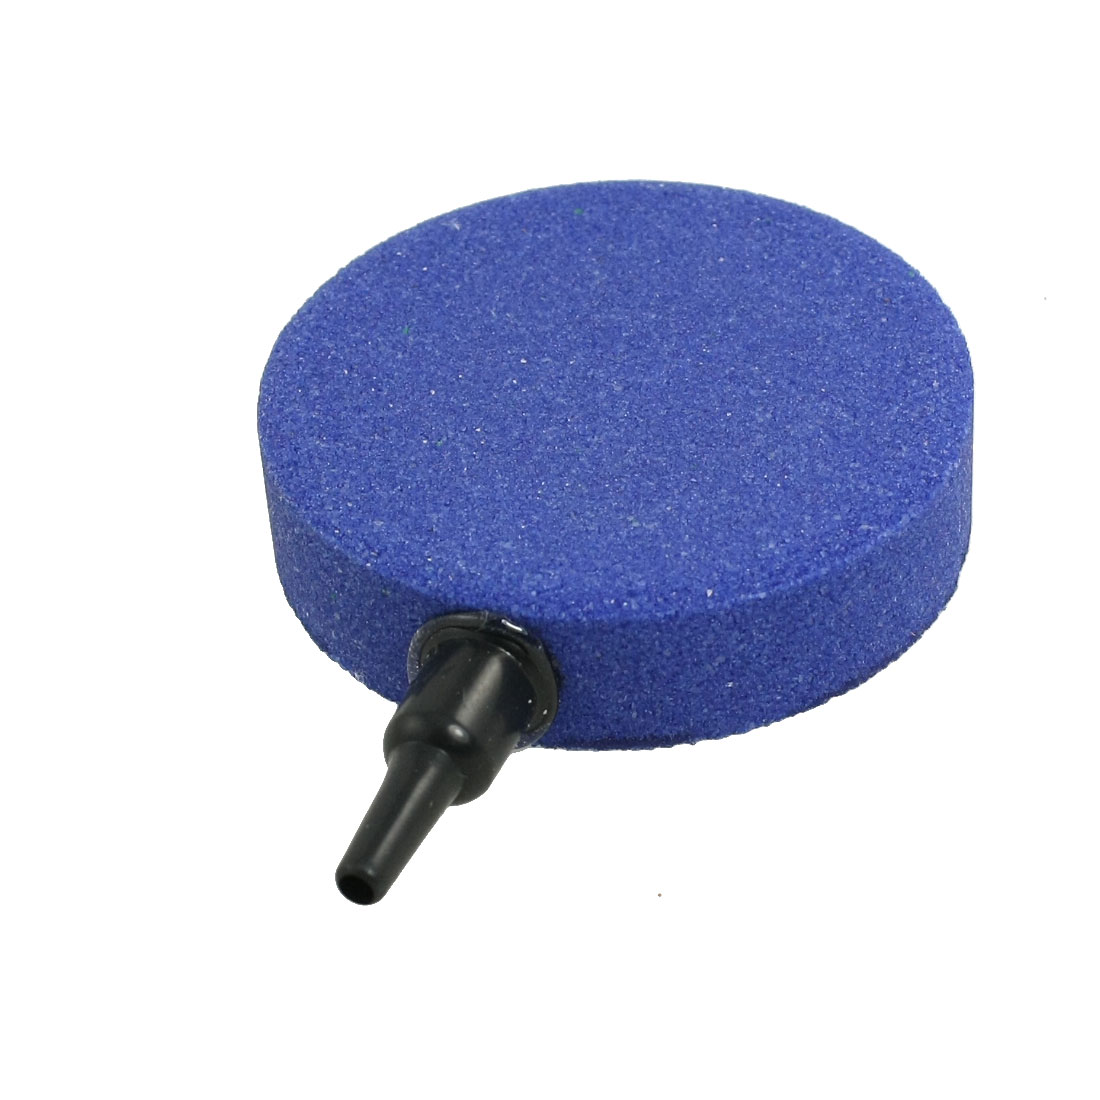 Aquarium Fish Tank Bubble Maker Blue Round Airstone 60mm x 15mm